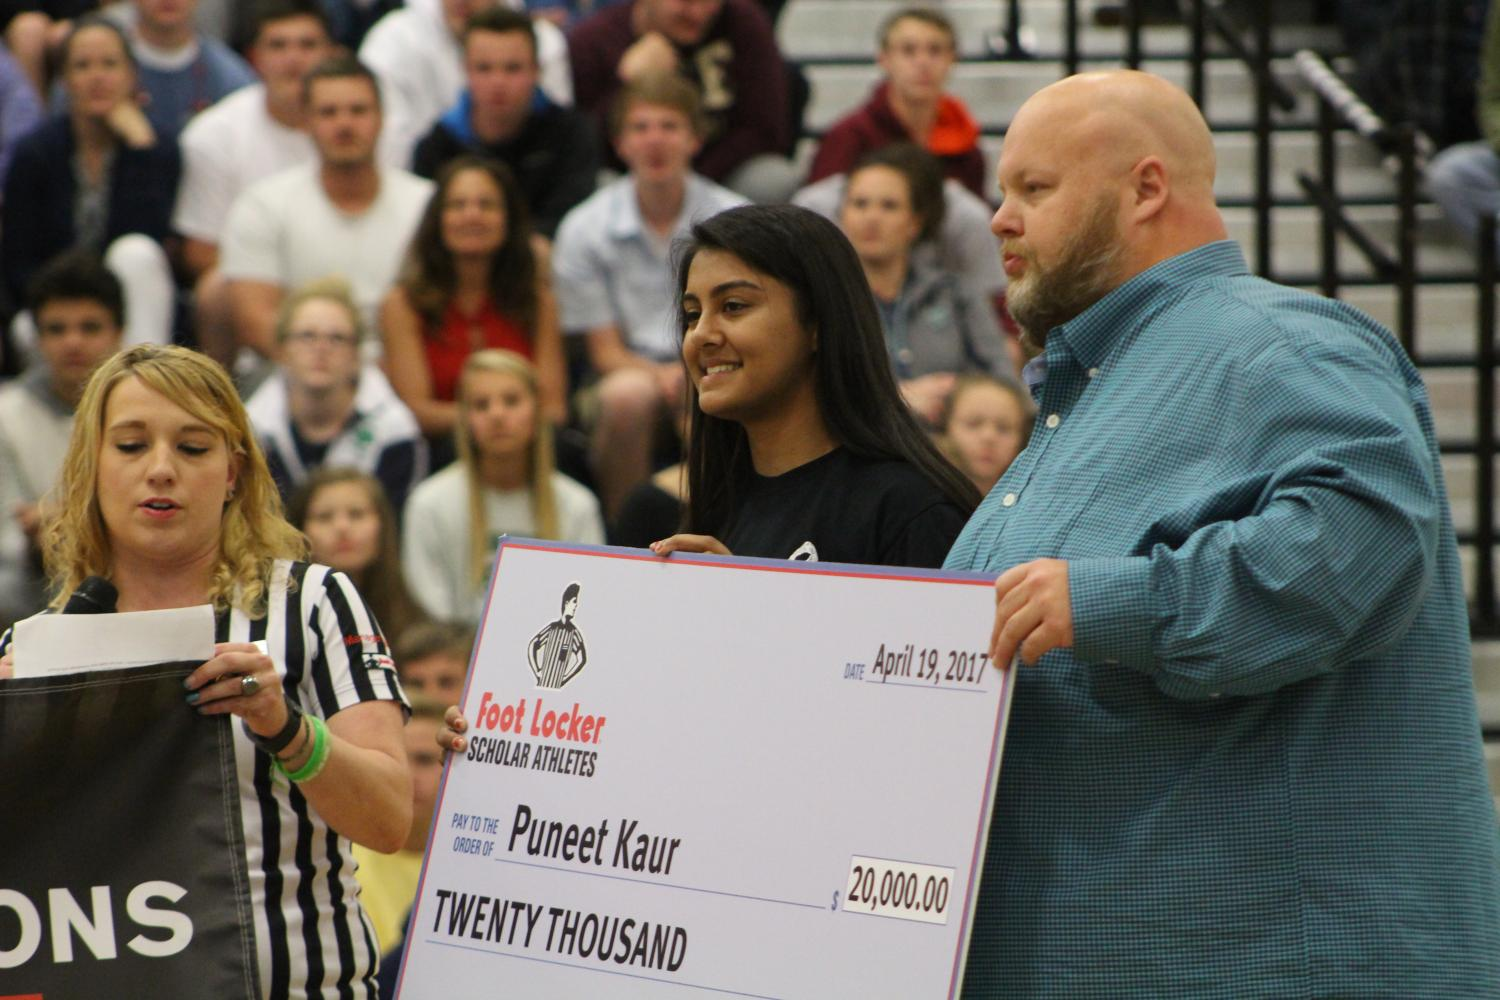 Senior Puneet Kaur receives a 20,000 dollar scholarship from the Foot Locker Scholar Athletes Program.